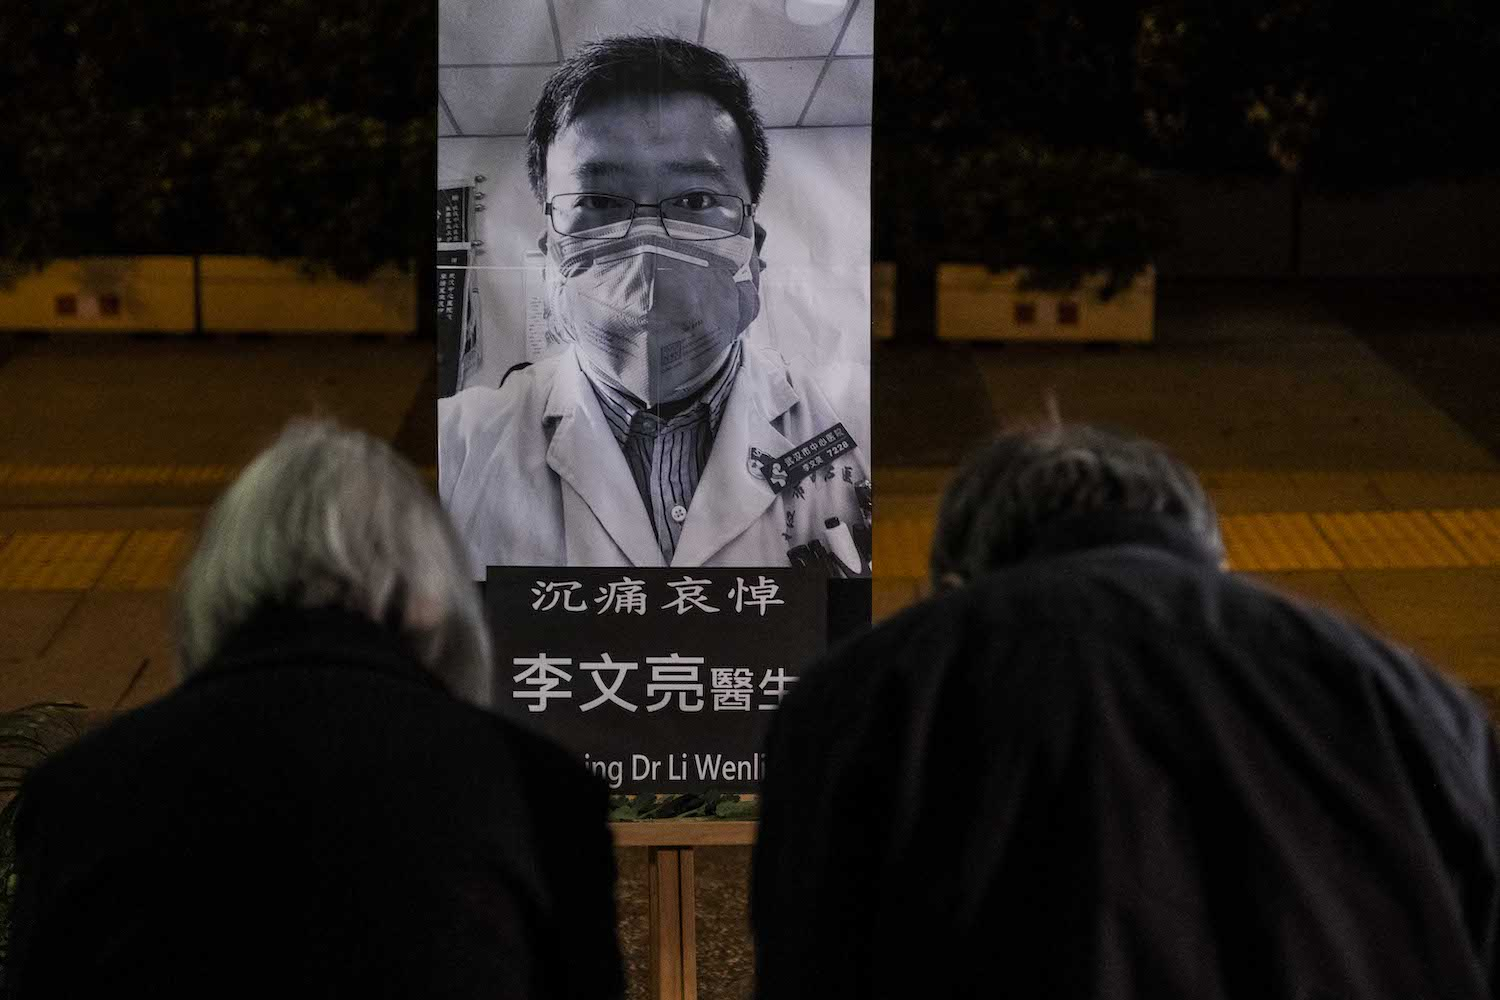 People pay respects at a memorial to Li Wenliang, who was silenced by the police for being one of the first to warn about the coronavirus, in Hong Kong on Friday. (Lam Yik Fei/The New York Times)